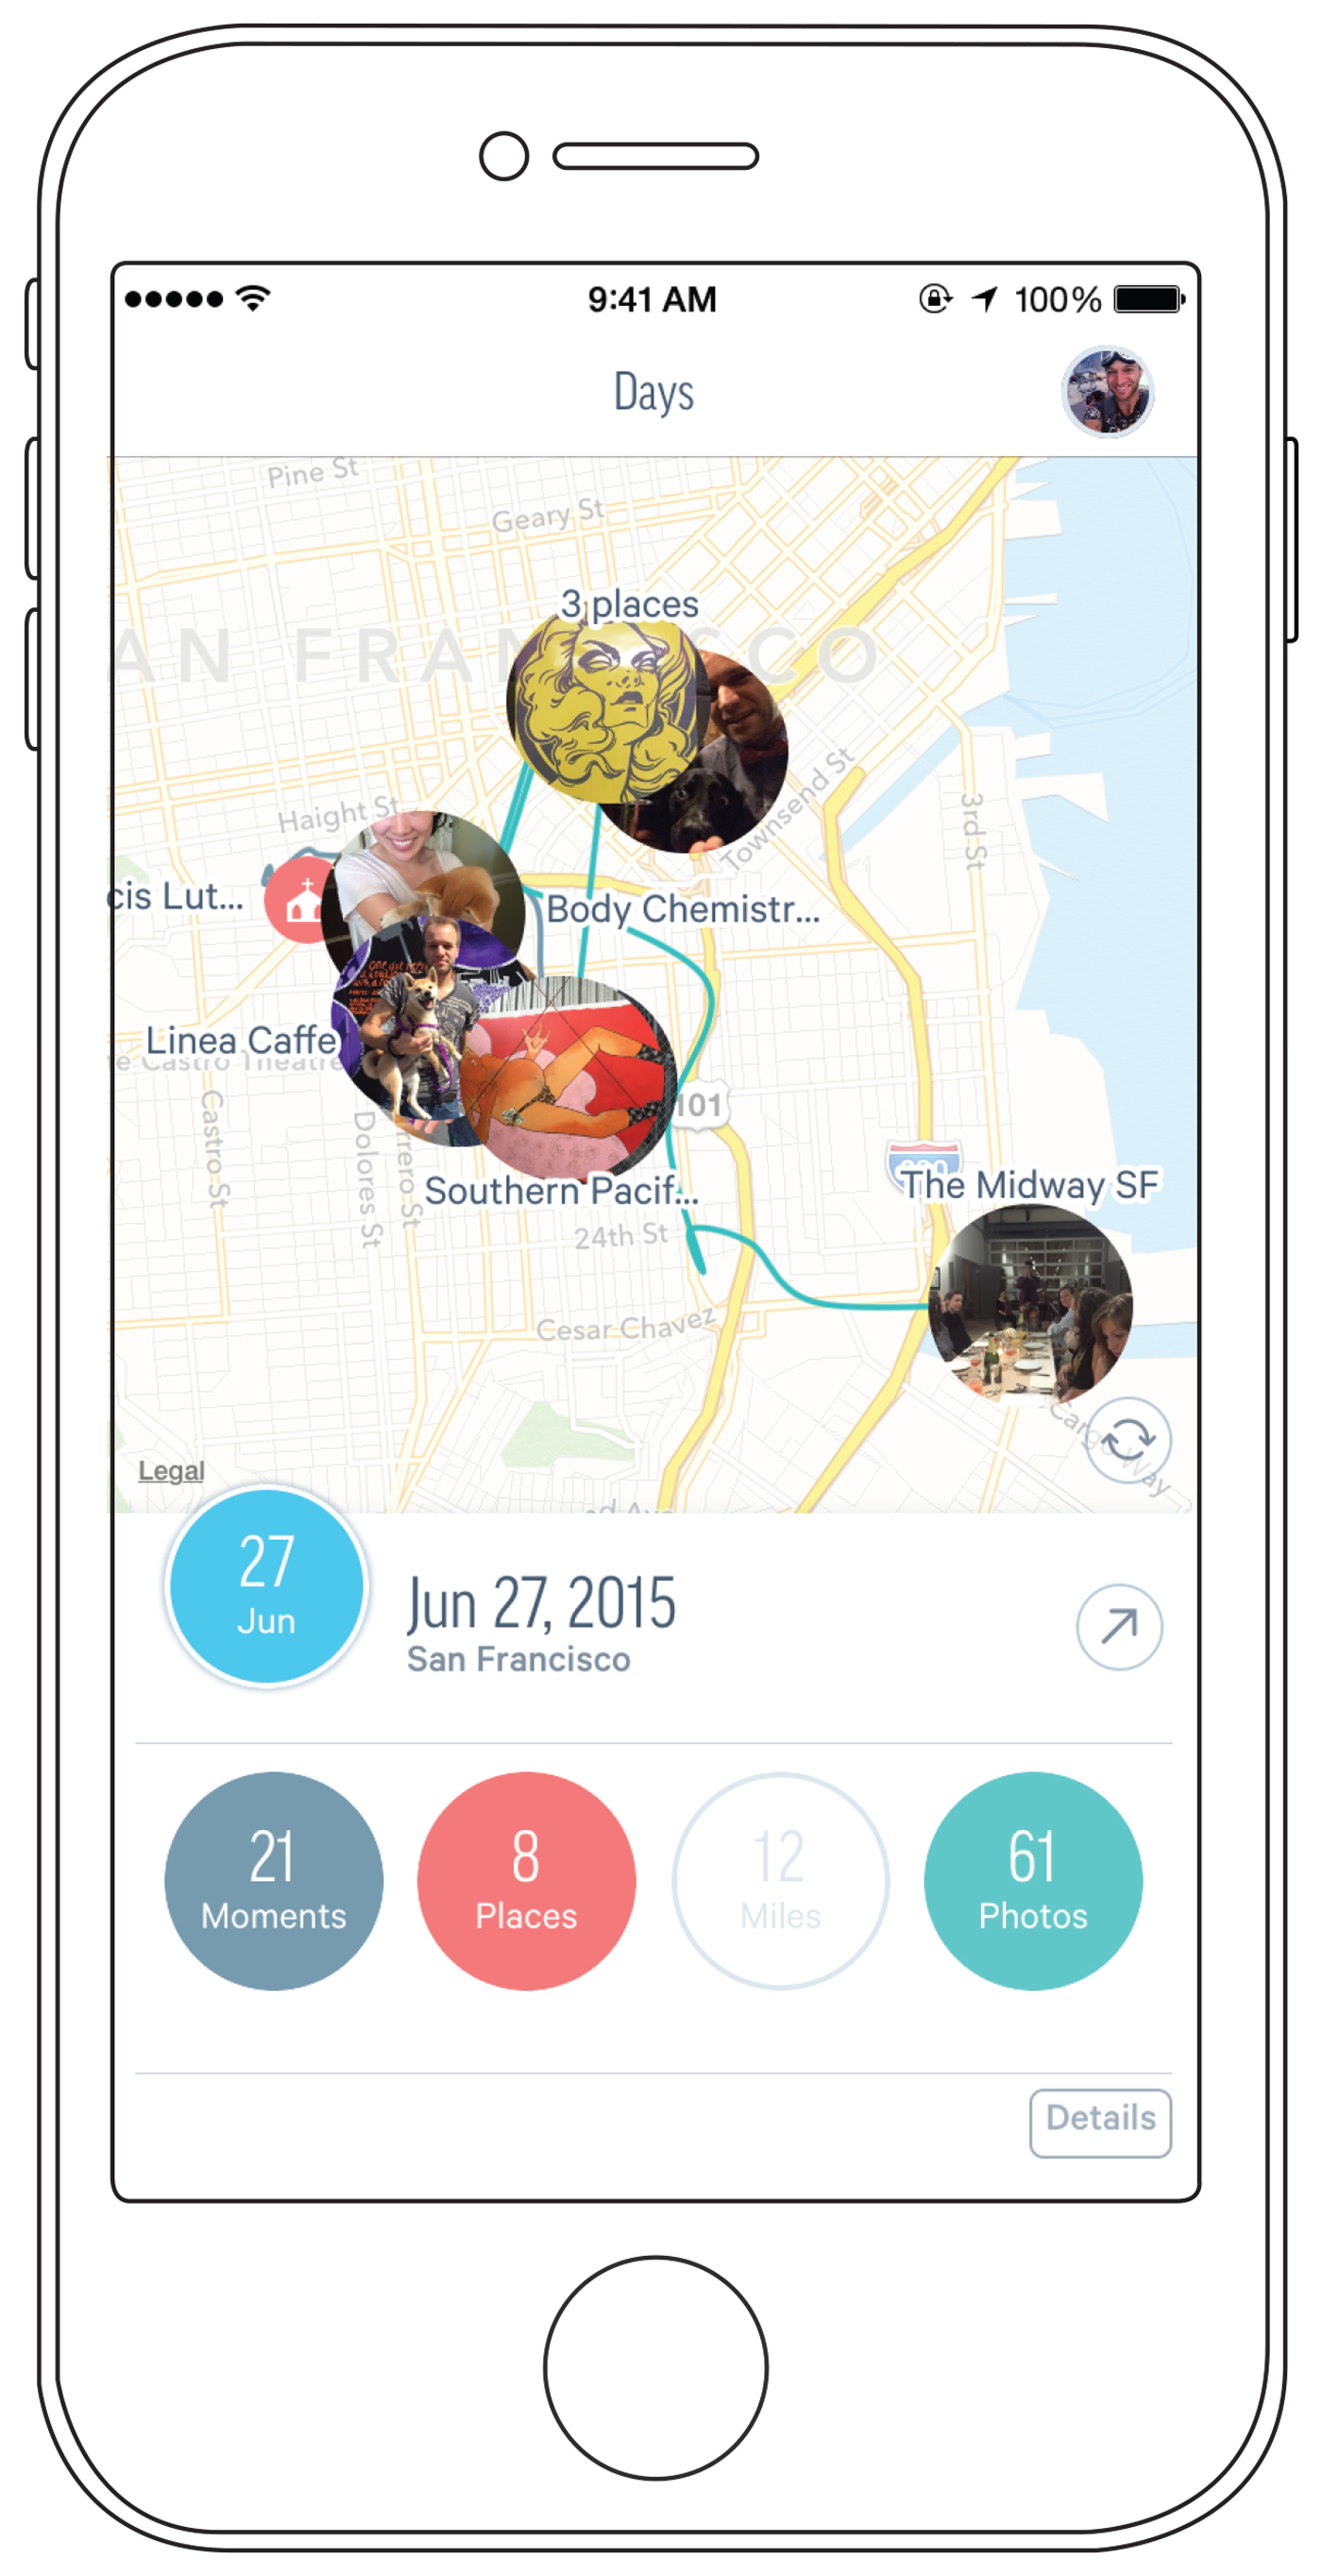 By connecting the Fabric app with your photos, social platforms, and GPS system, you can find out what you did on any given day.